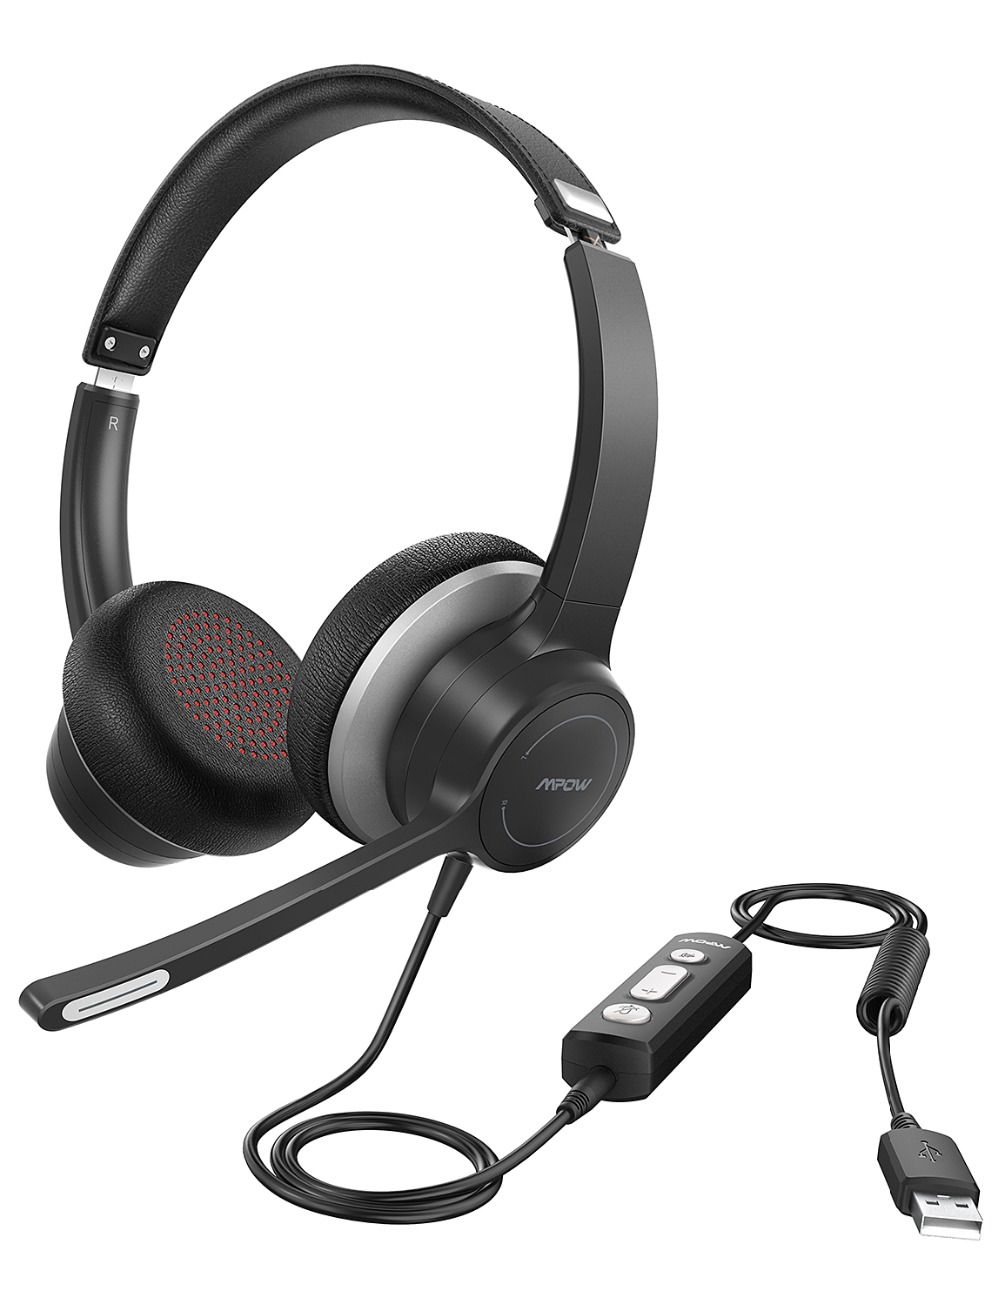 Mpow 328 Wireless Headphones USB 3.5mm Computer Headset With Microphone Noise Reduction Sound Card For PC Skype Call Center Mac (9)